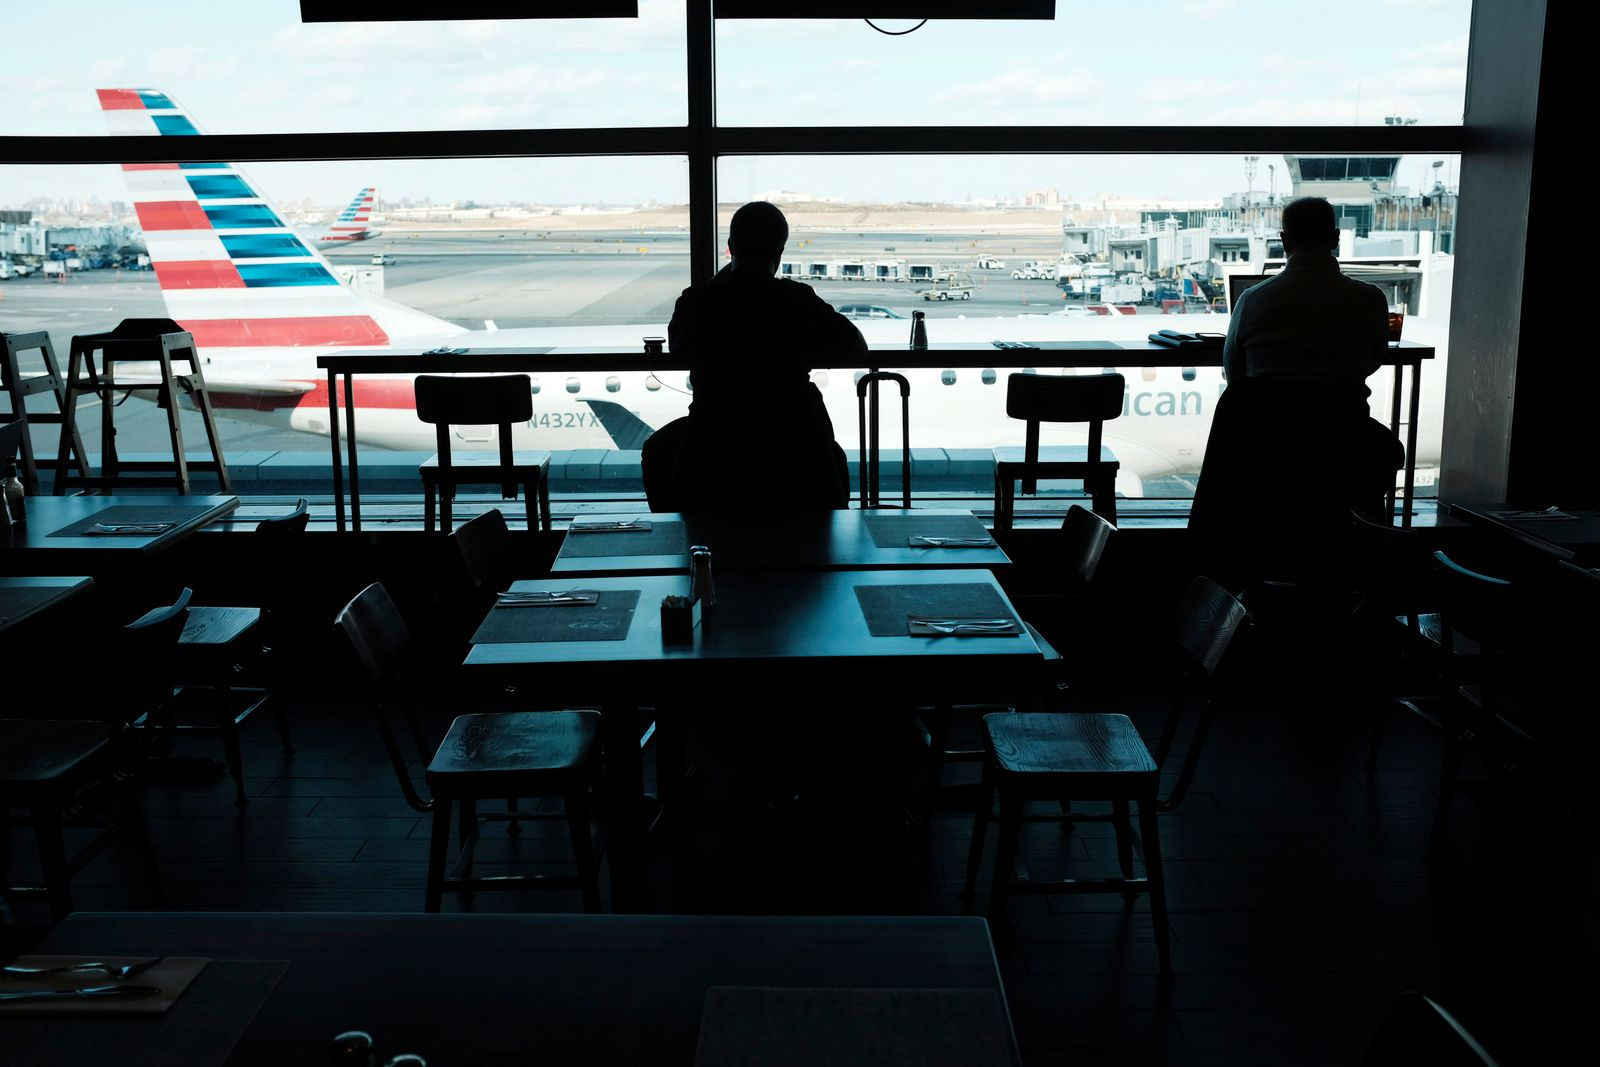 Flights Into New York's Laguardia Halted Over Air Traffic Control Staffing Issues Related To Gov't Shutdown